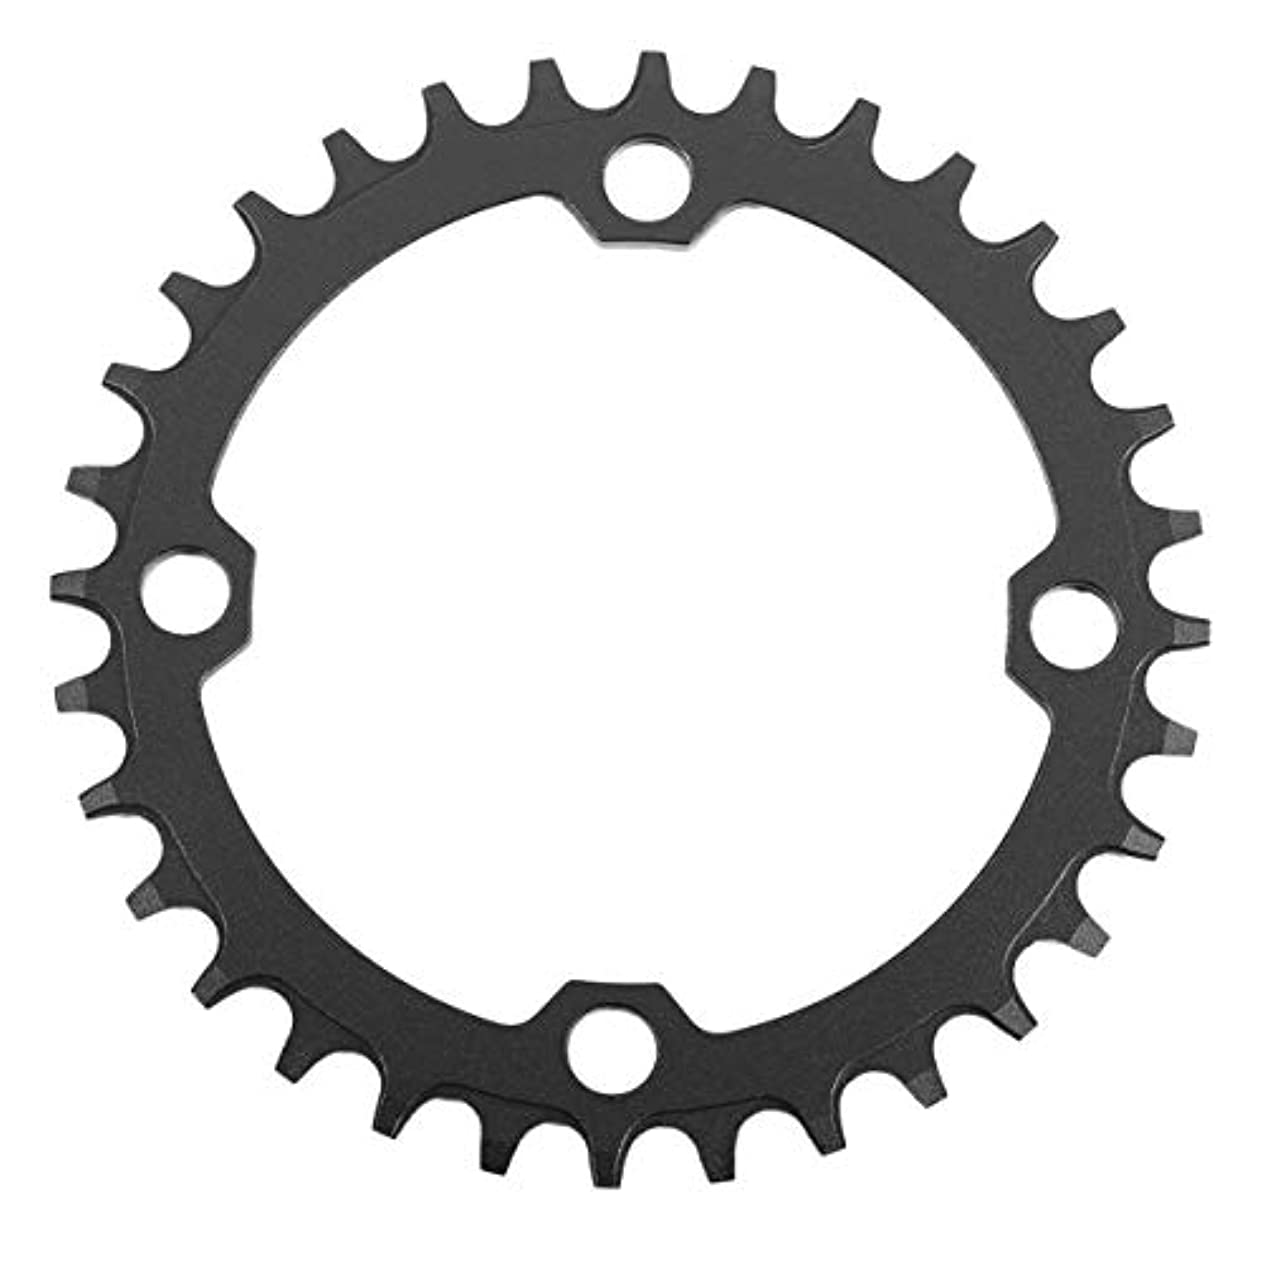 抵抗する未払い炭素DECKAS Narrow Wide Bike MTB Crank Round Oval Chainring Chain Ring自転車Chainwheel Bike Circle Single Plate-ブラック